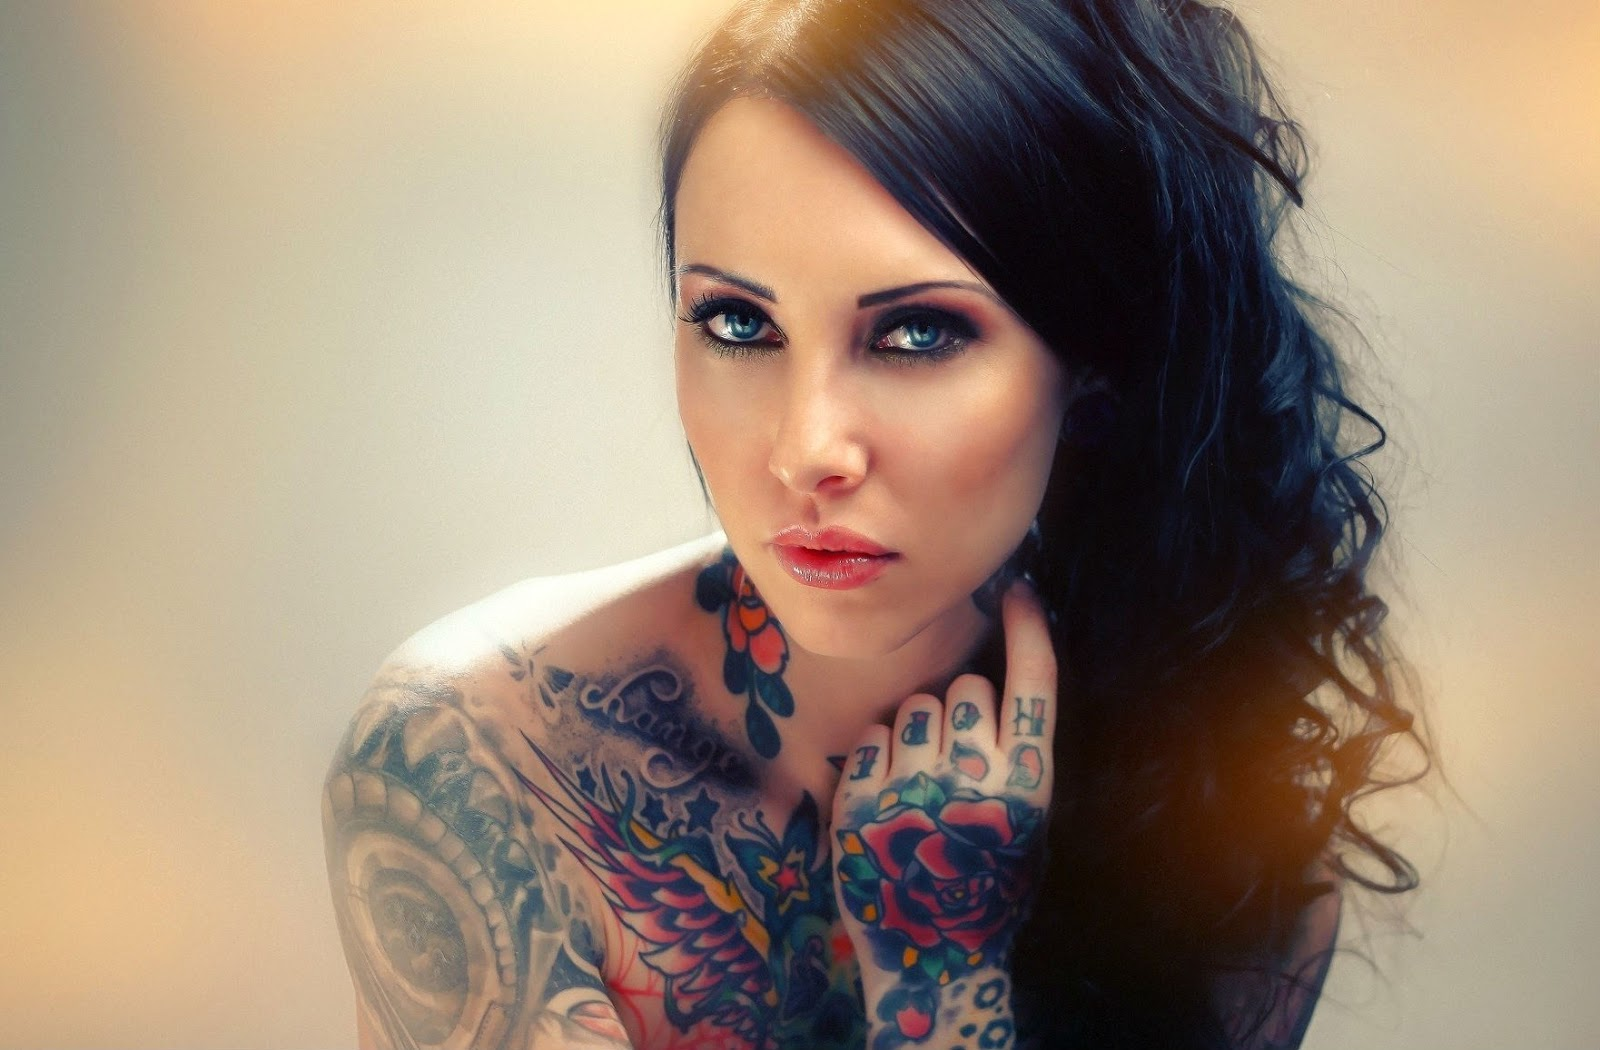 Tattooed women wallpaper tattooed women wallpaper for Woman with tattoos